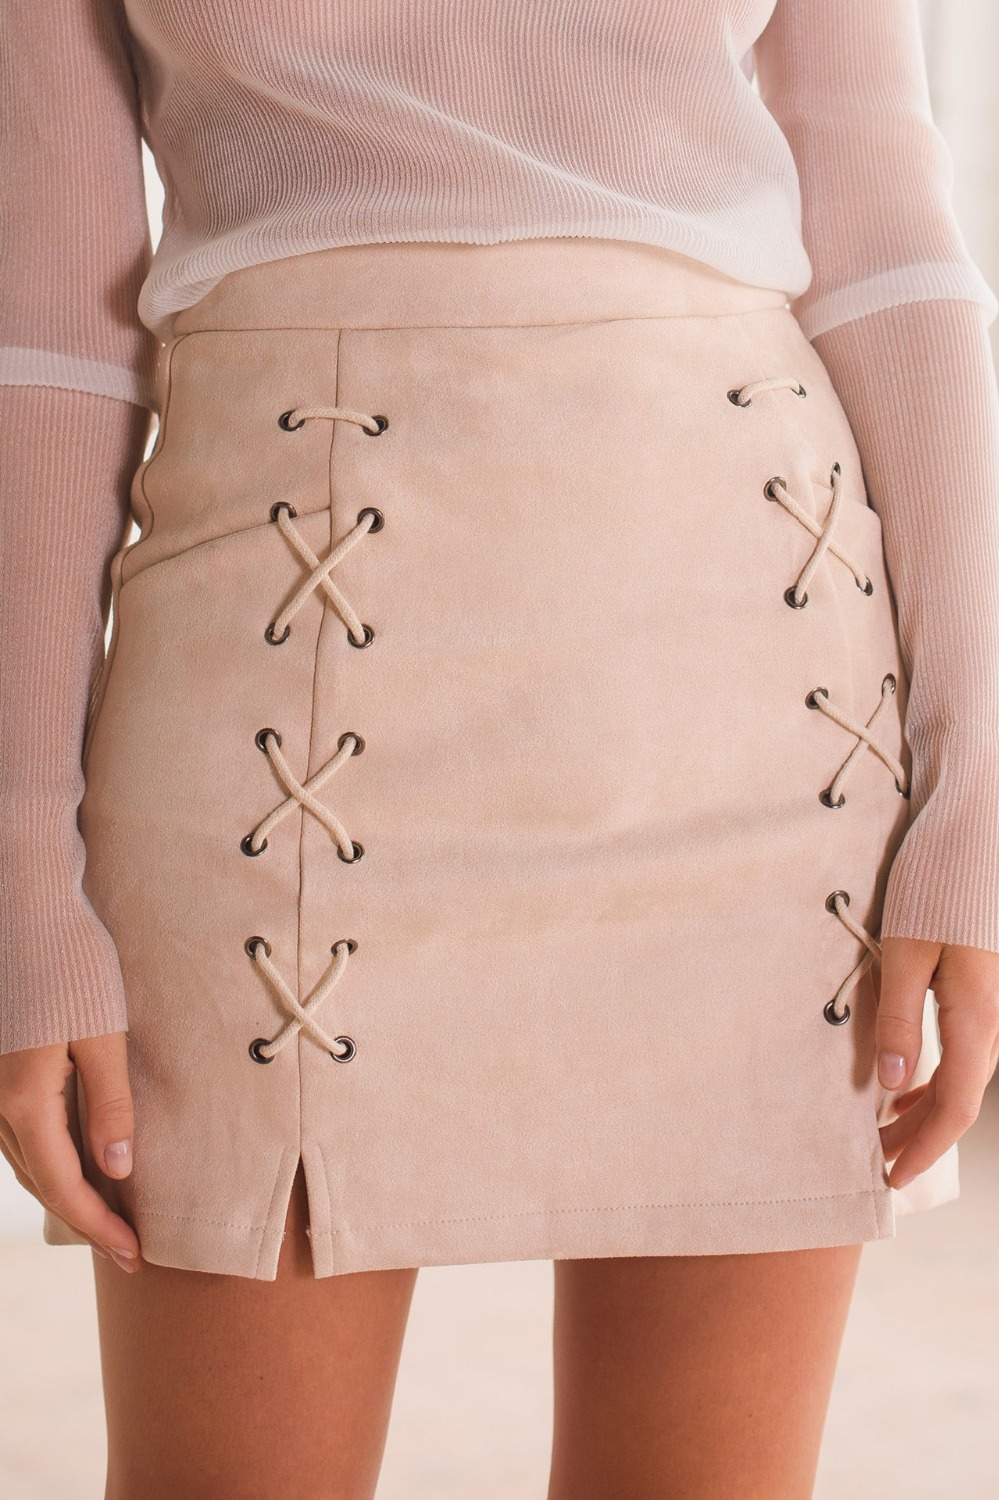 37f3452459 Autumn Women Lace Up Suede Leather Pencil Skirt High Waist Zip Back Split  Bodycon Short Saia Retro Harajuku Preppy Winter Skirt-in Skirts from Women's  ...